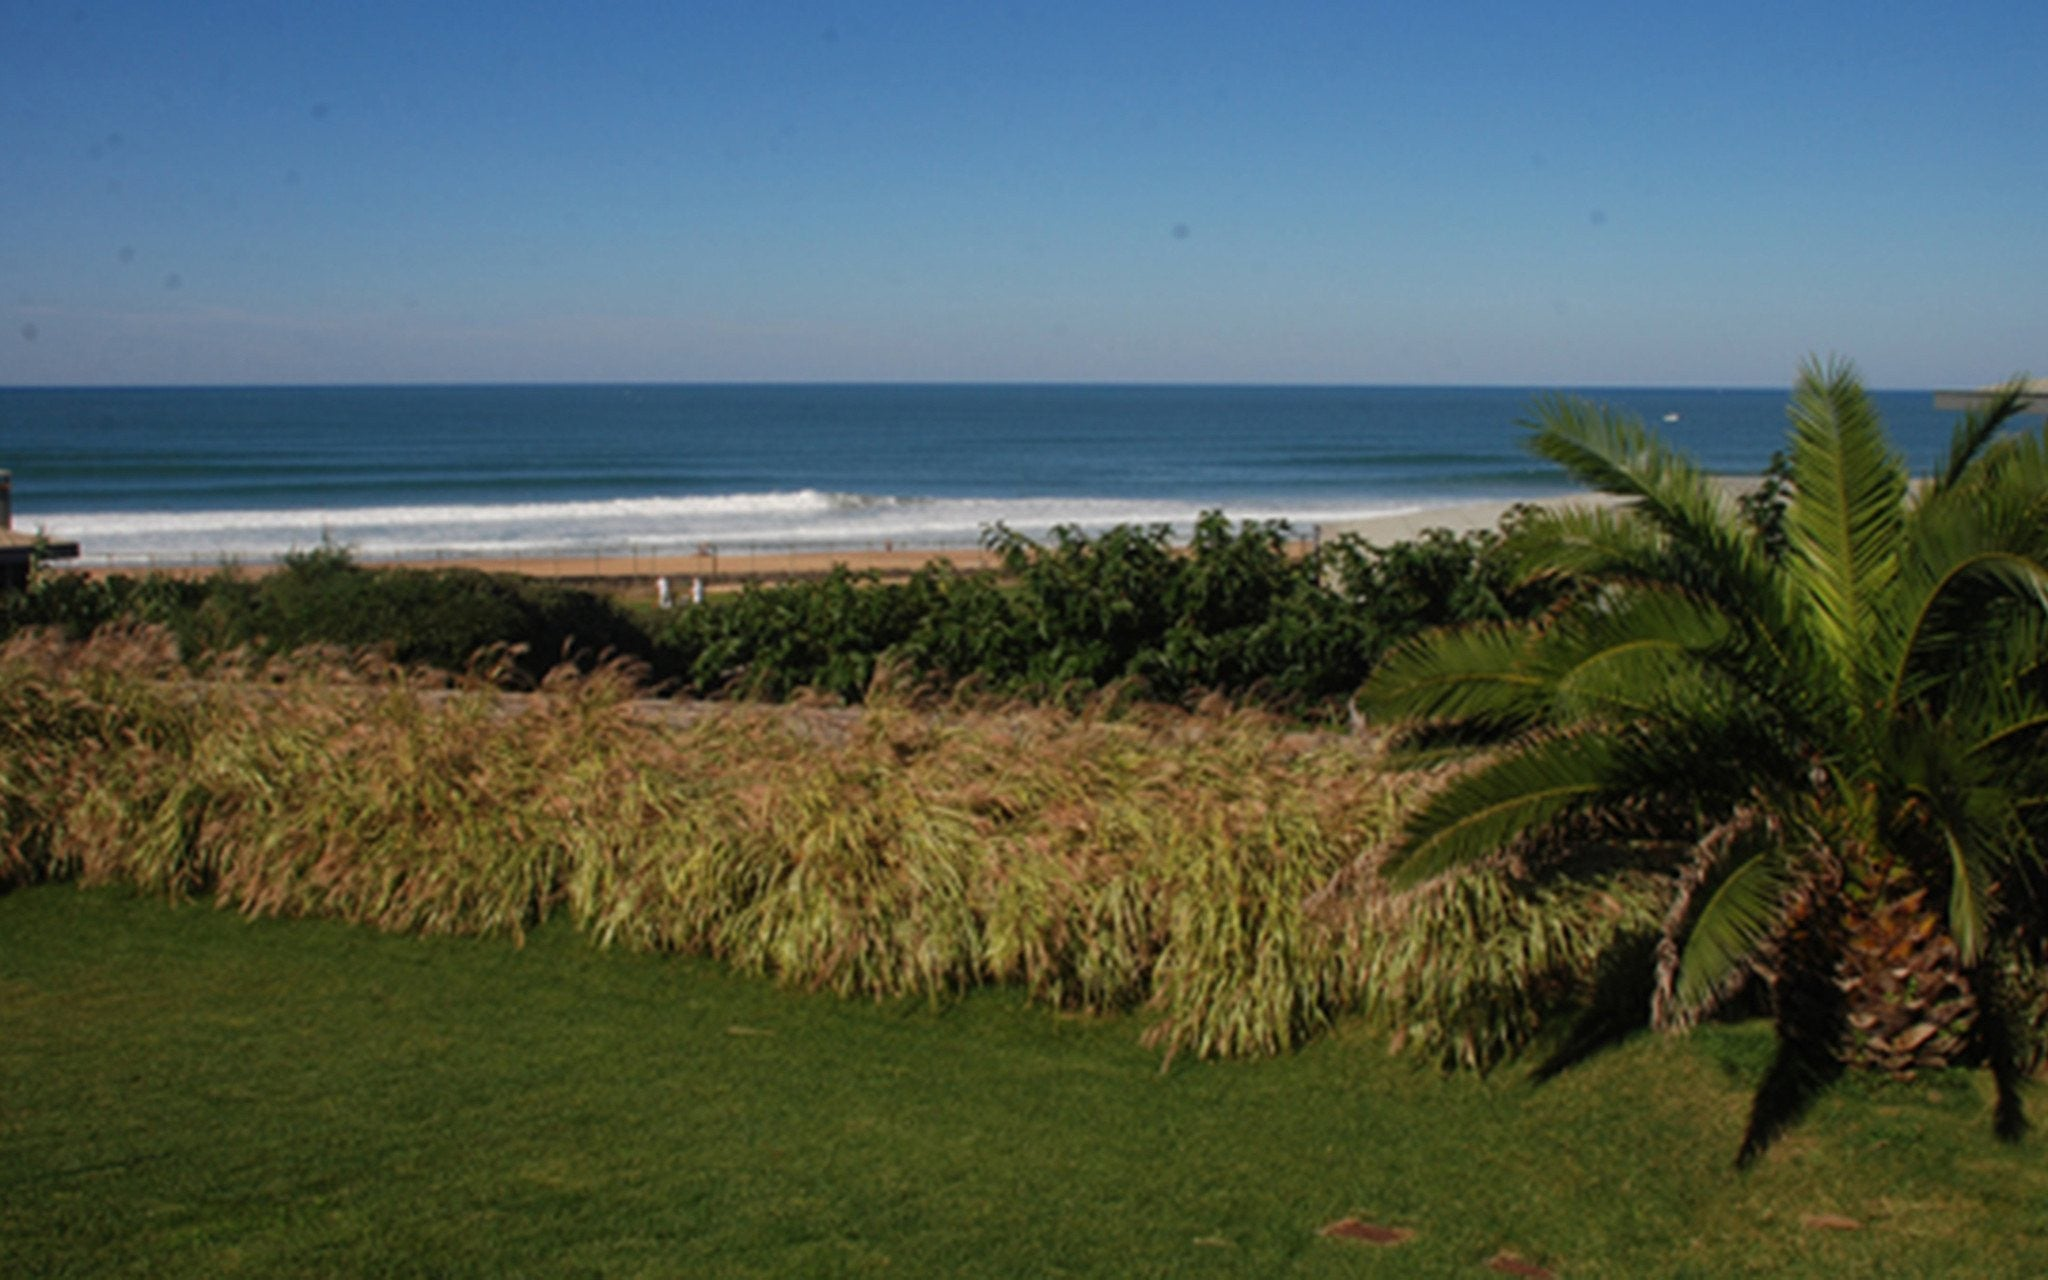 Villa Atlantique, Biarritz Anglet, France - KE NUI North Shore, Oahu, Hawaii, Vacation rentals Oahu, Vacation home rentals Oahu, North Shore vacation rentals, Hawaii beach homes for rent, Luxury rental Oahu, Luxury vacation home  Hawaii, Surf north shore, Surf Oahu, North shore villas, Beachfront Oahu, North shore Hawaii rentals, Oahu vacation homes, Oahu vacation rentals beachfront, Beachfront vacation rental Oahu, Beachfront North shore, Hawaii vacation rentals, Hotels Oahu, VRBO Hawaii, Vacation rental Rocky Point, Vacation rental Pipeline, Vacation rental Sunset Beach,